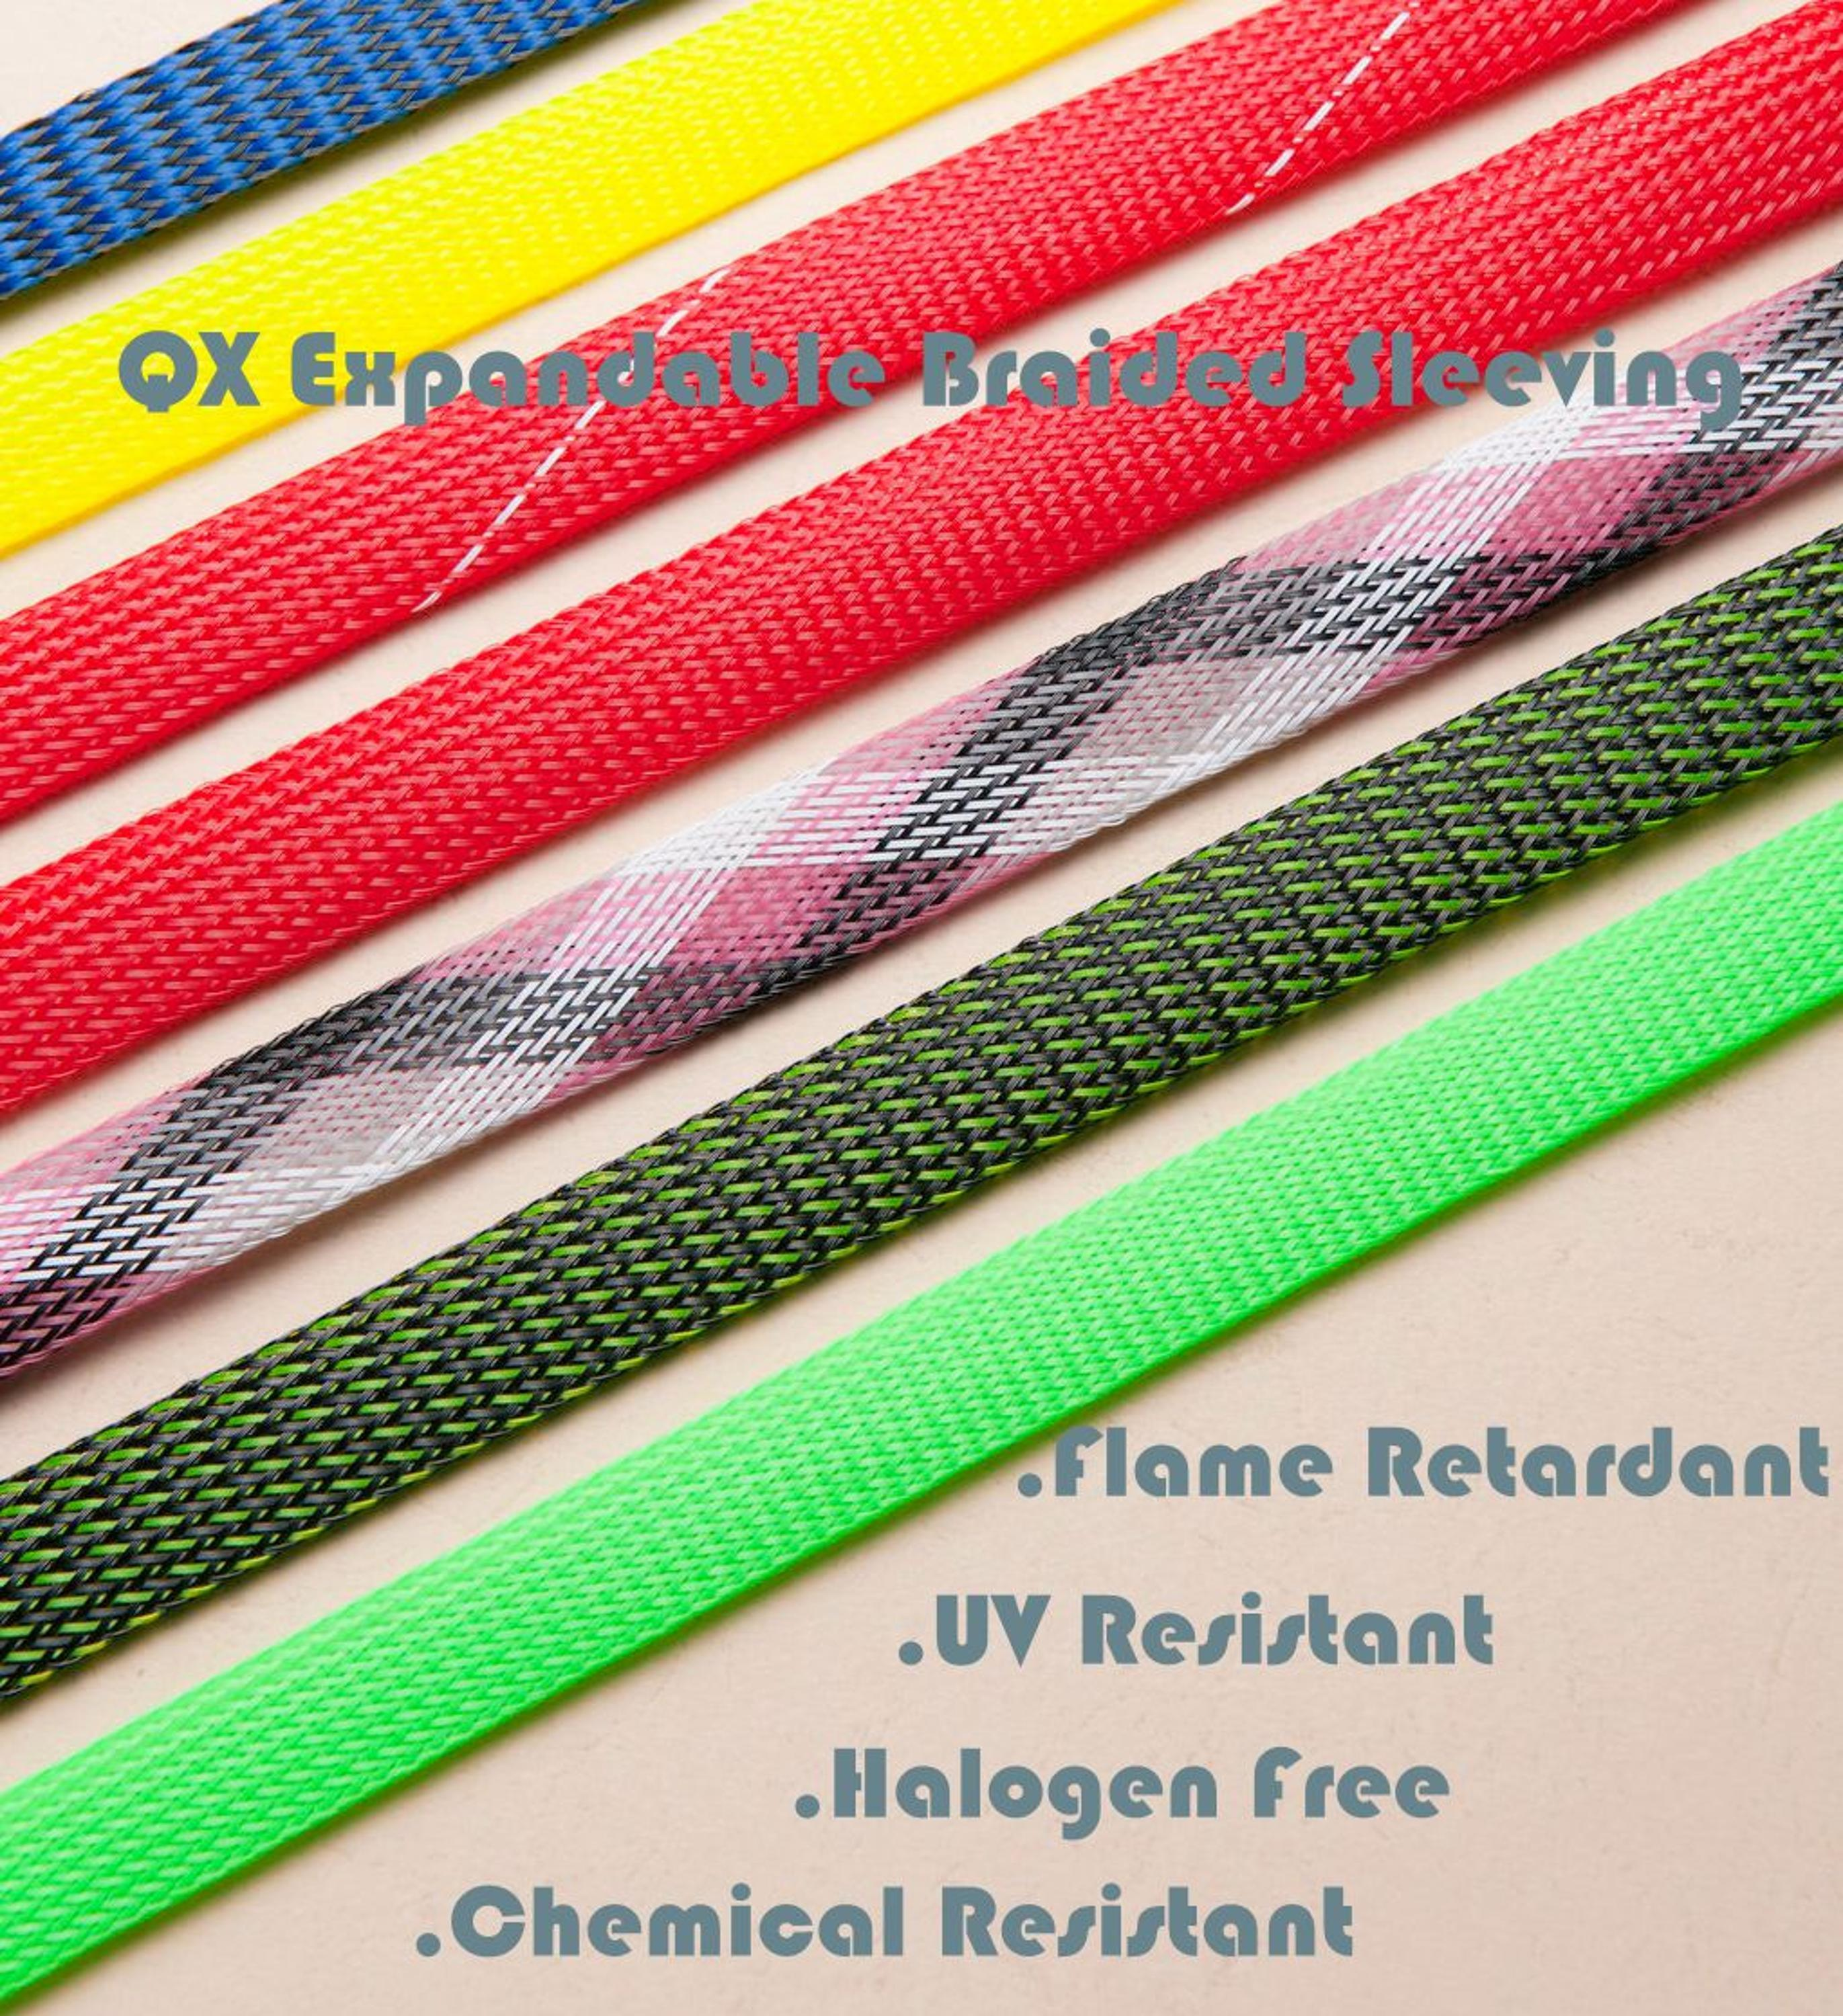 Non Flammable Flexo Pet Expandable Braided Cable Sleeving Wear Wire Harness Resistant